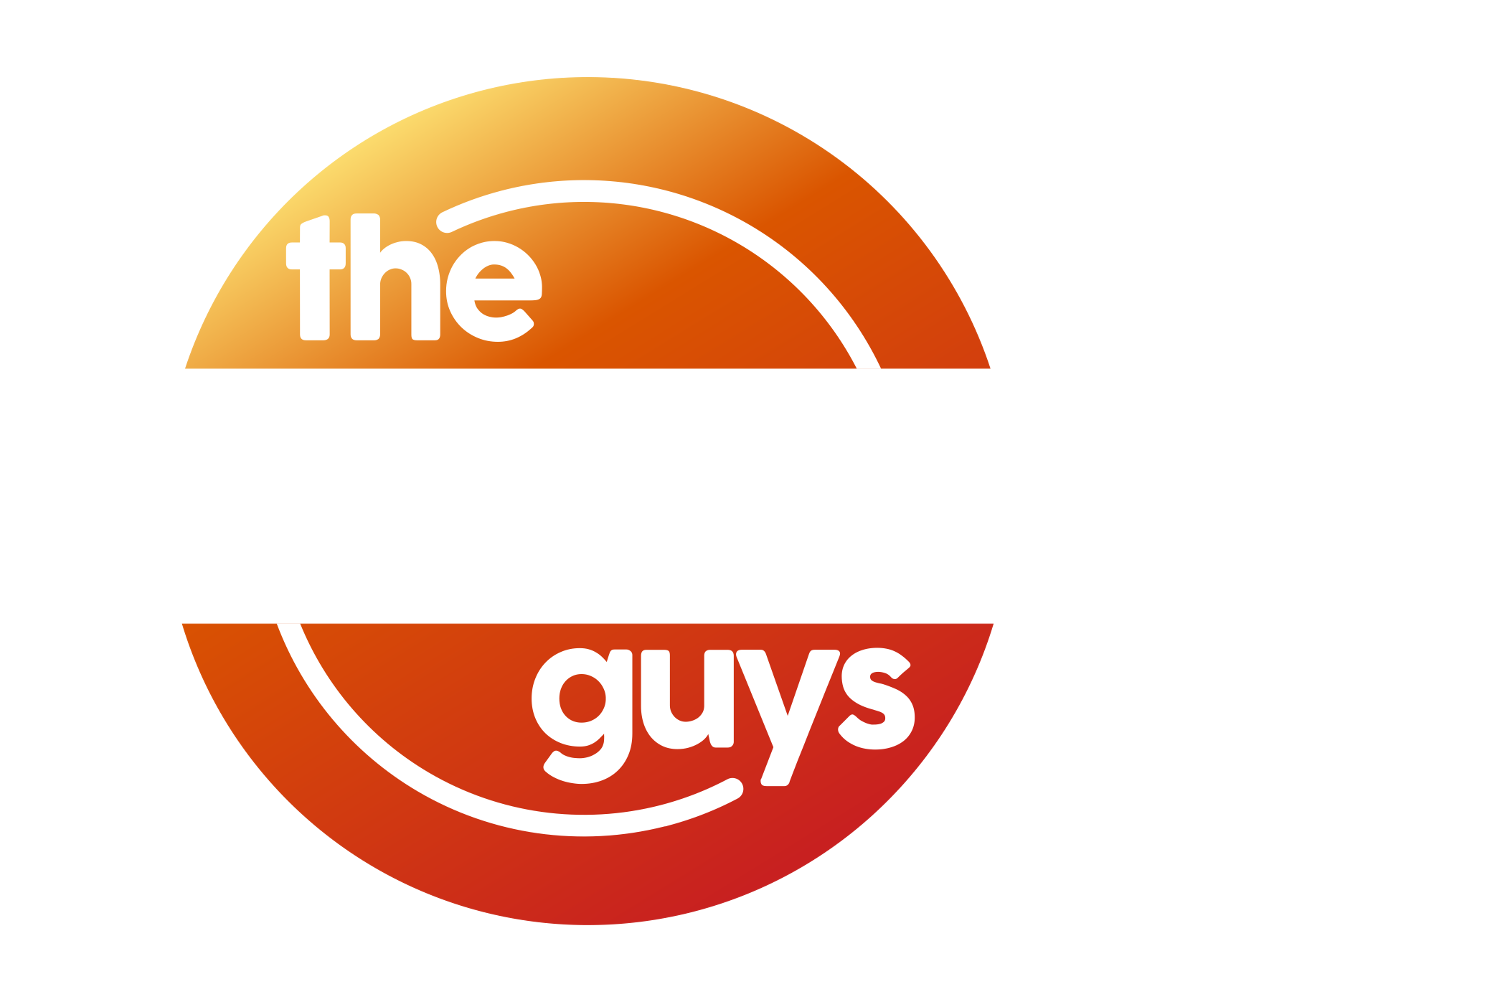 the competition guys